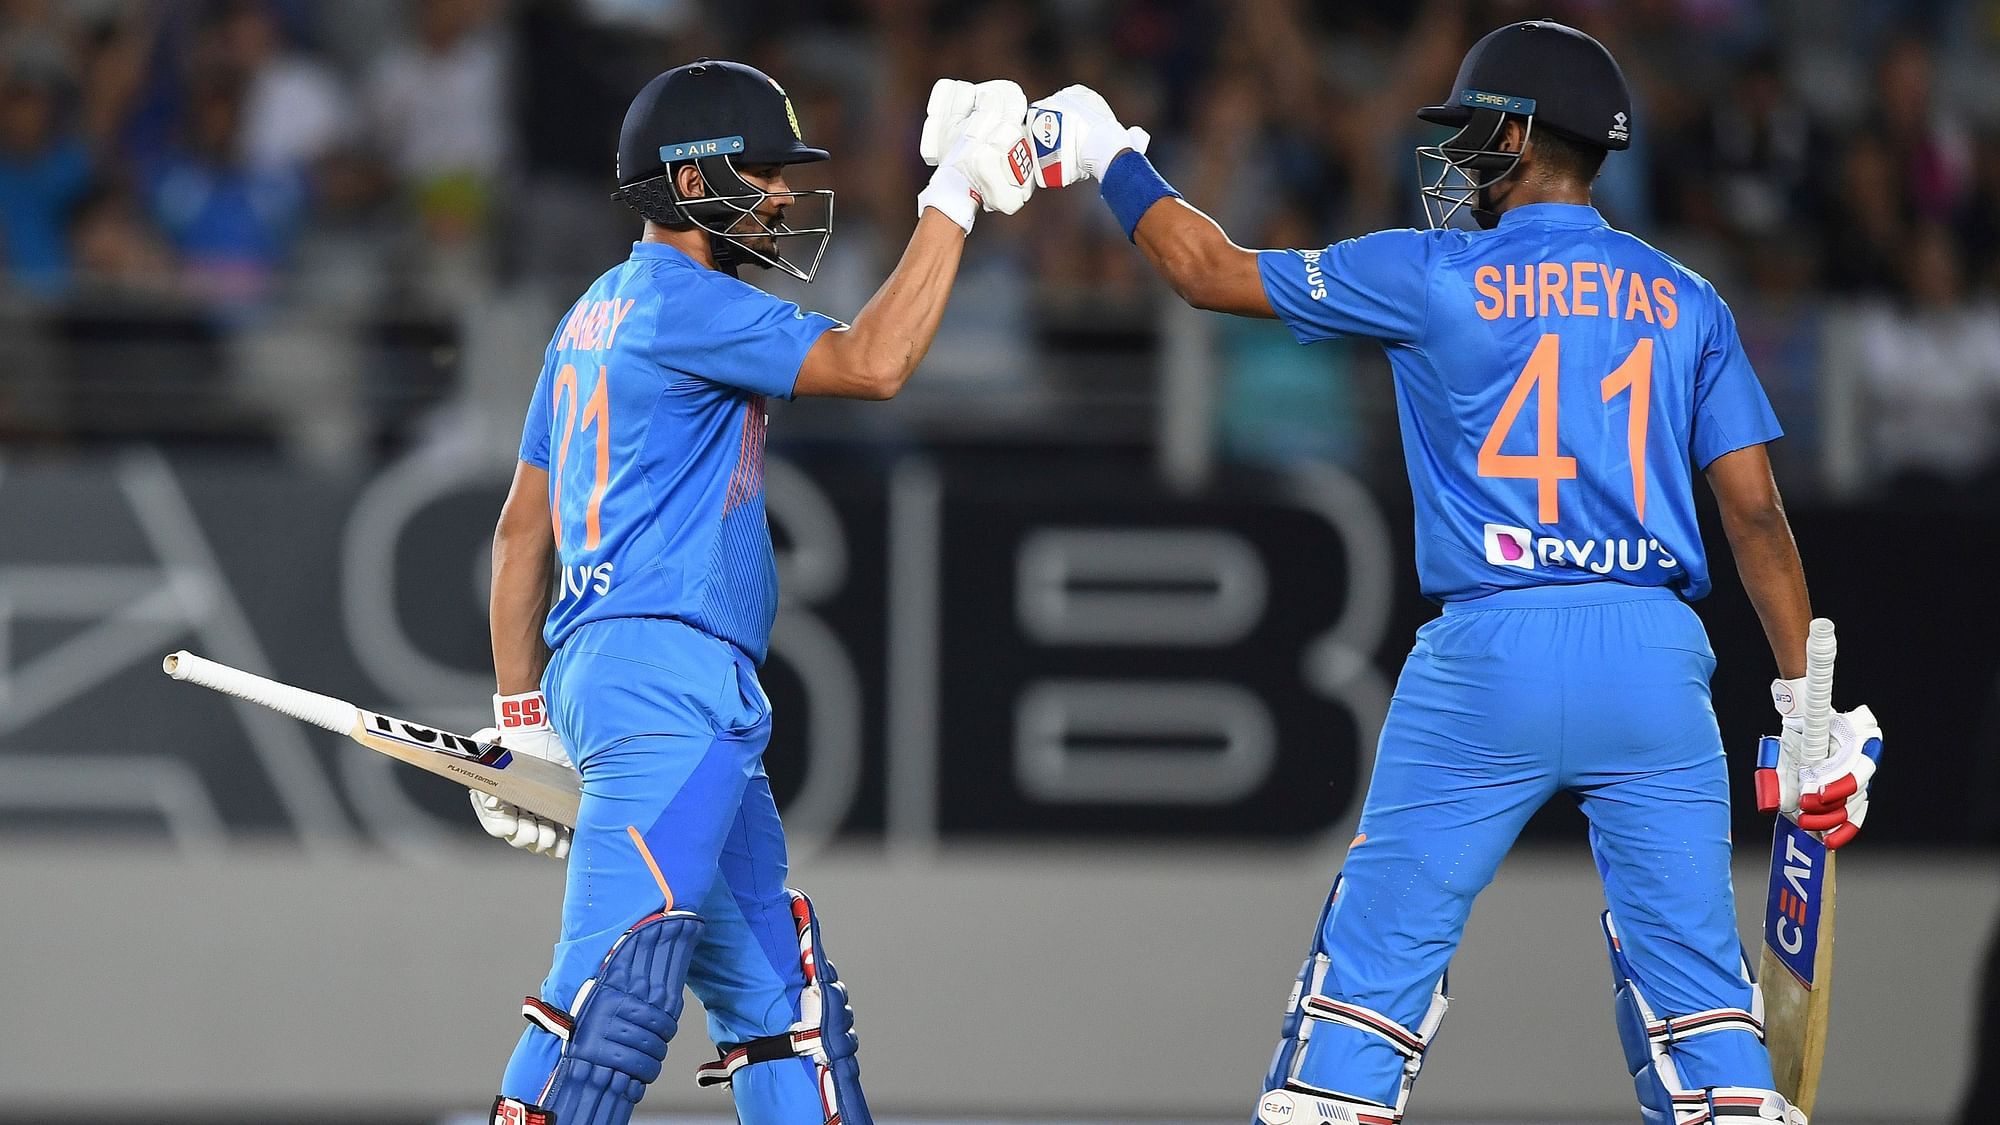 India vs NZ 1st T20: India Register 6-Wicket Win to Take 1-0 Lead